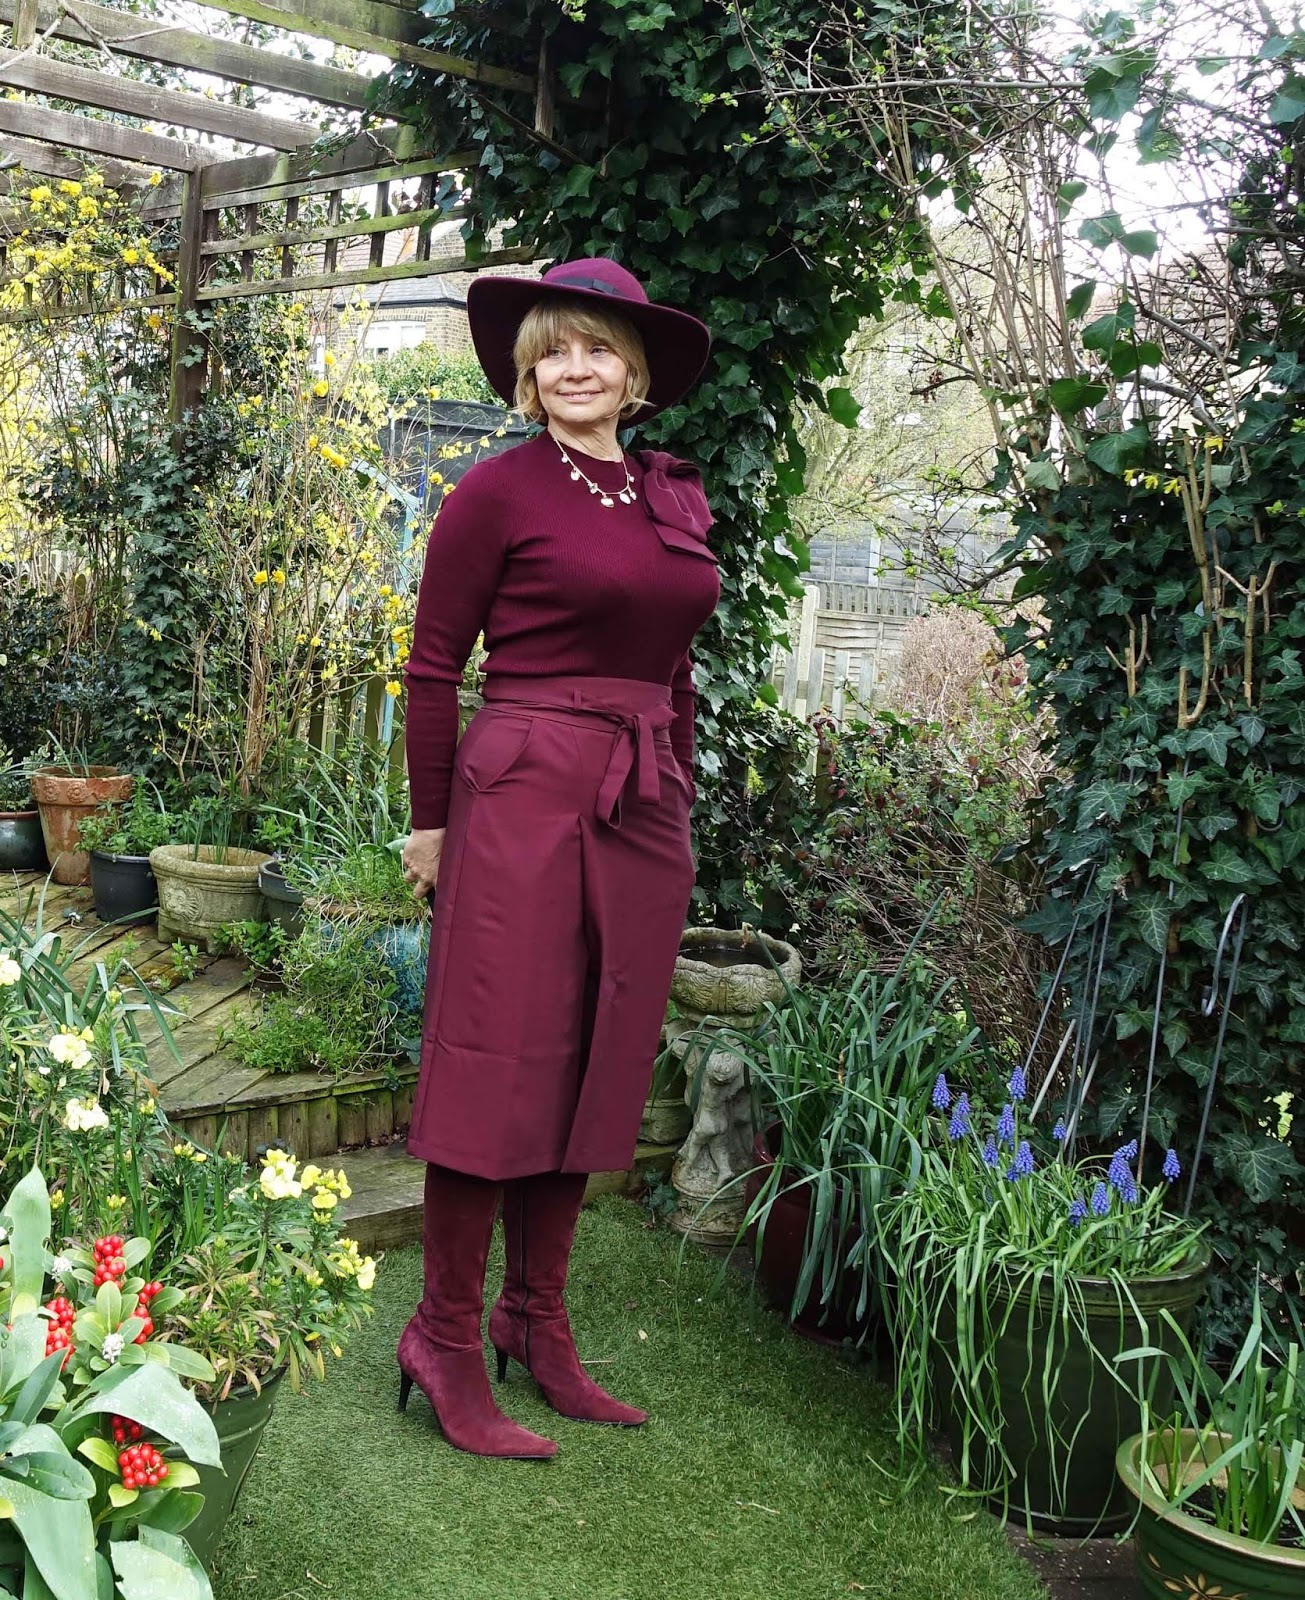 A monochrome outfit is one in a single colour, worn head to toe. In this example from over 50s blog Is This Mutton? the outfit is burgundy separates with boots and a hat.